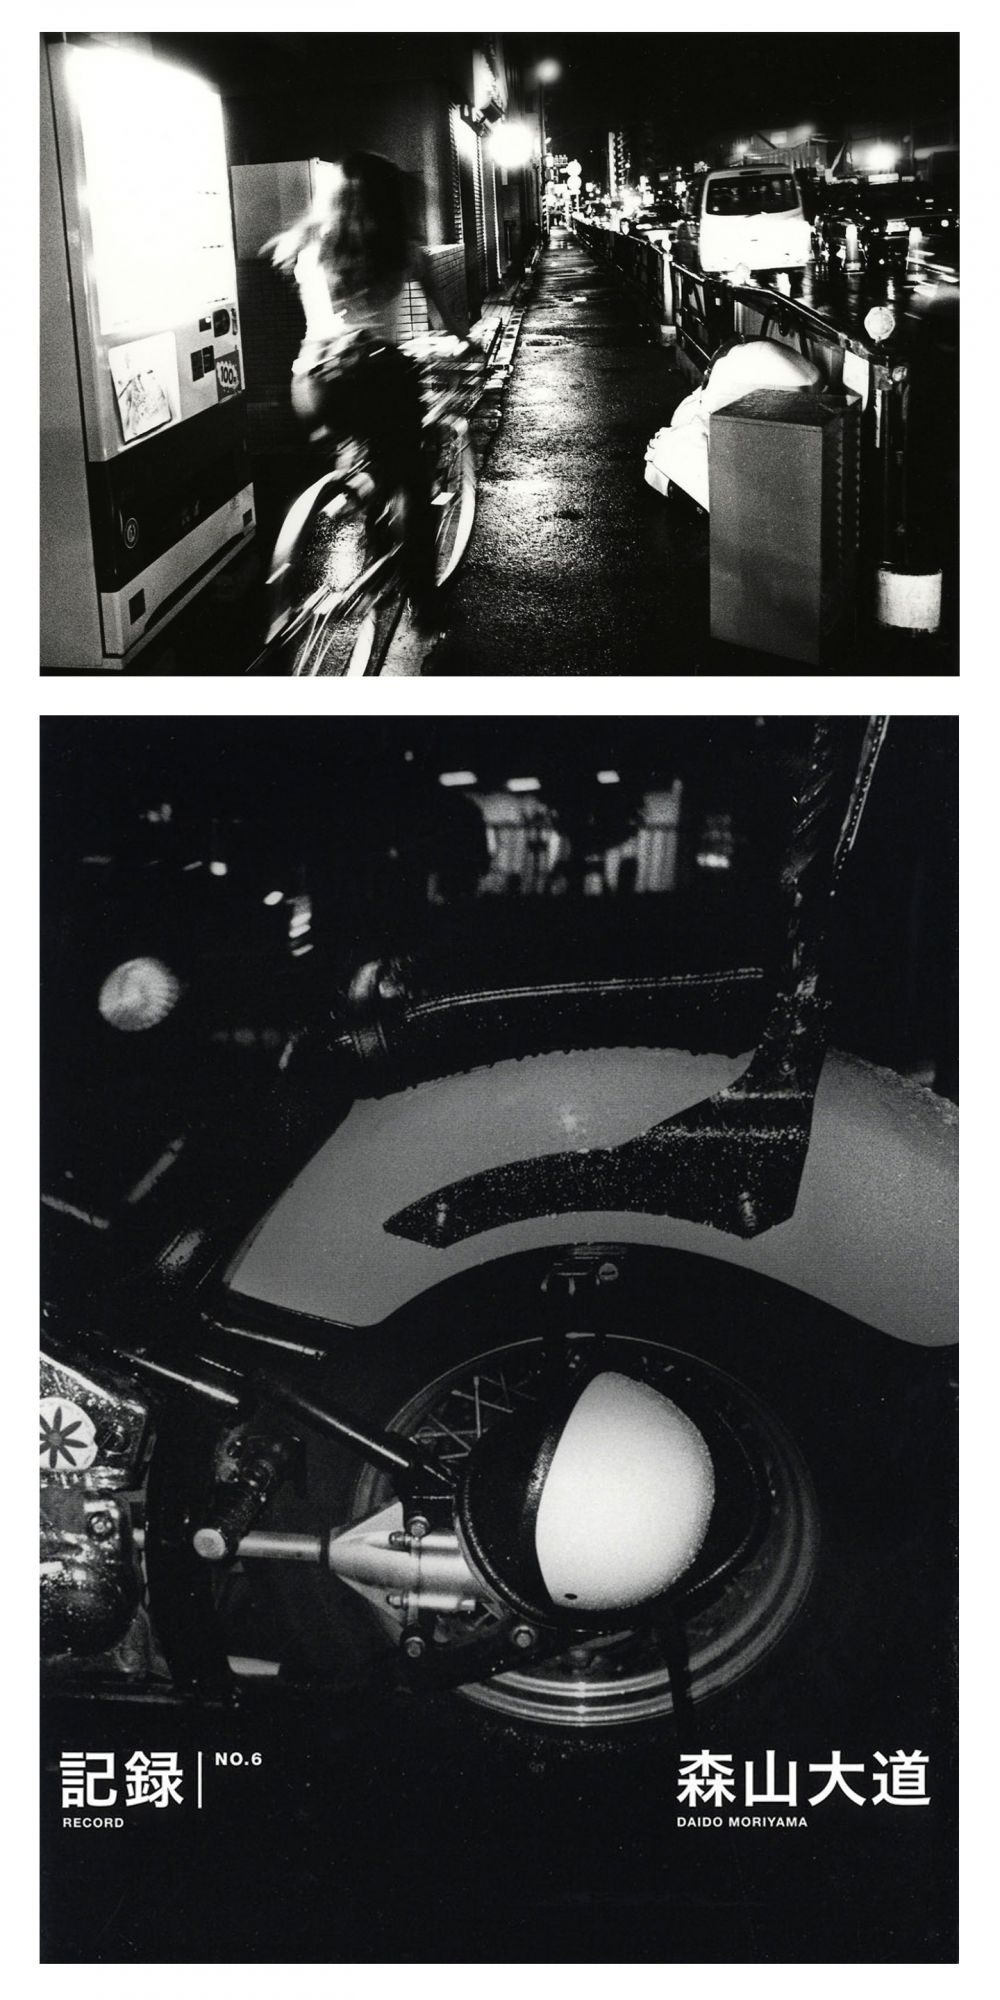 Daido Moriyama: Record No. 6 / Kiroku No. 6, Limited Edition (with Gelatin Silver Print)